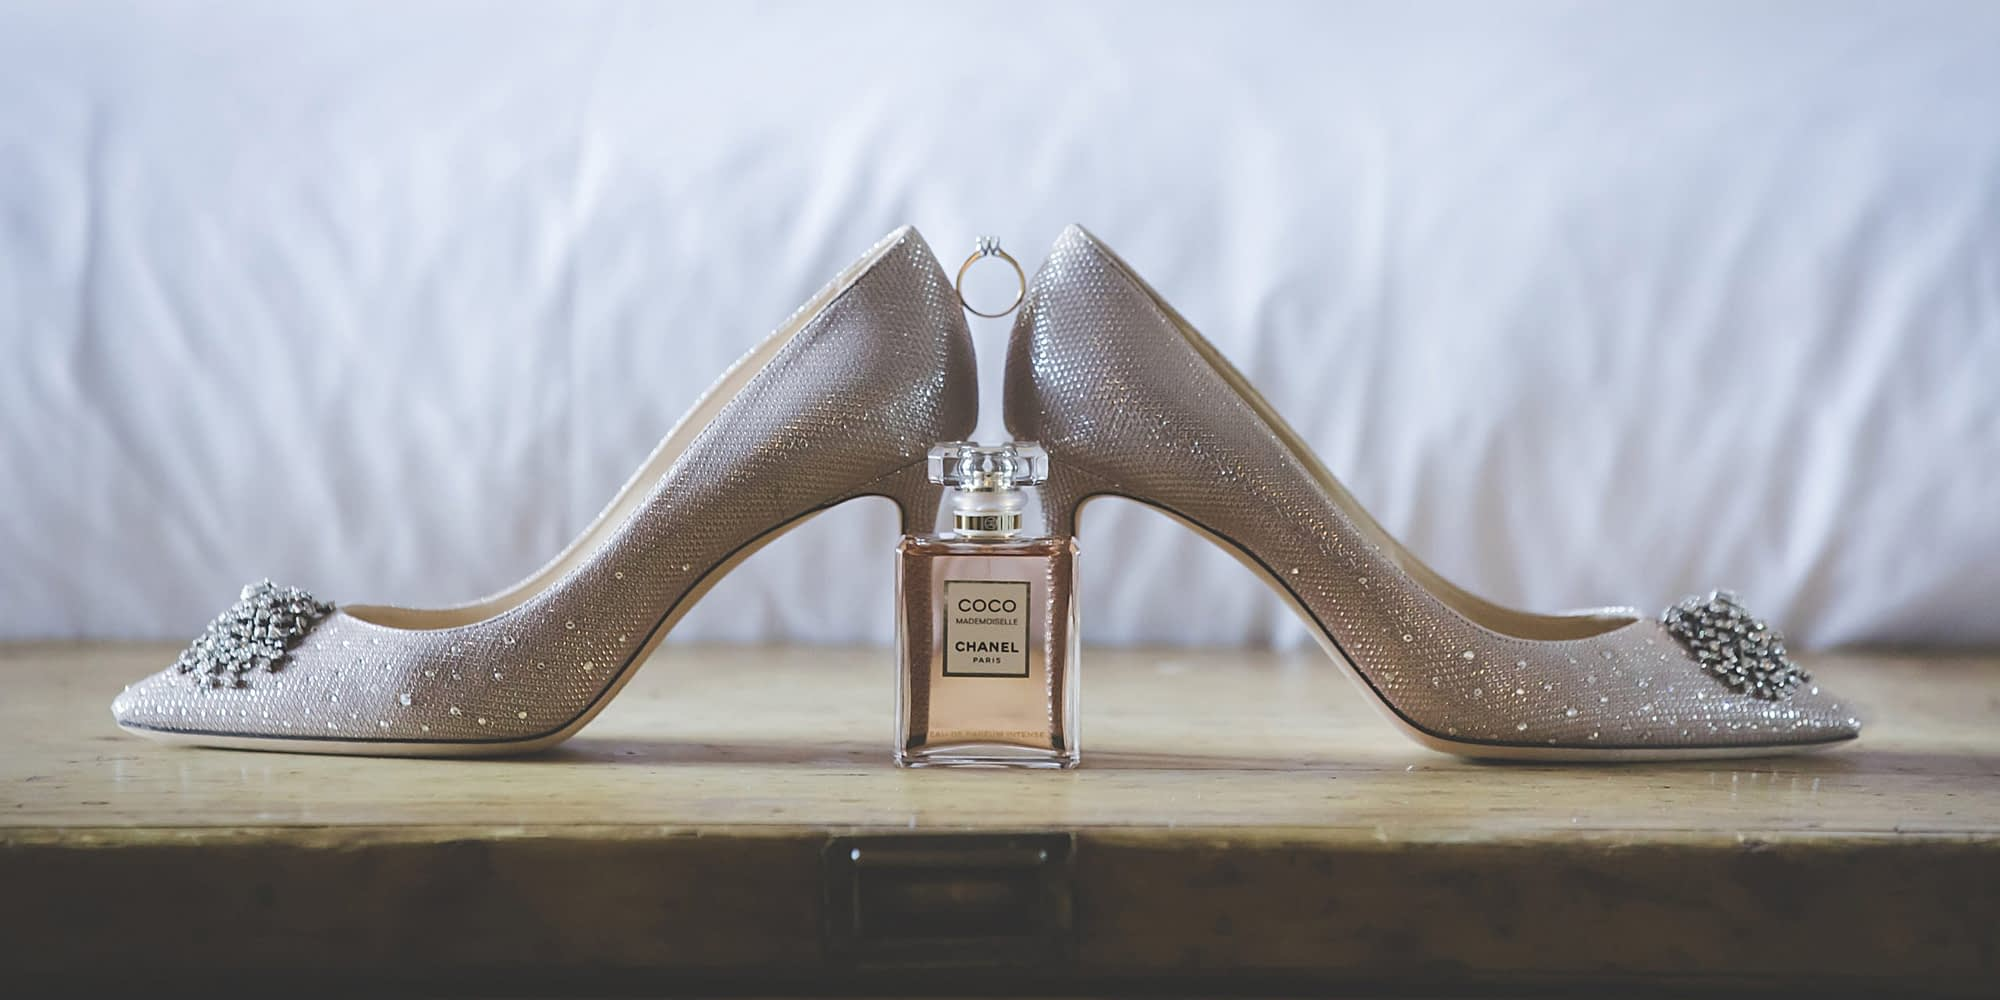 Jimmy Choo shoes & Channel perfume on a table